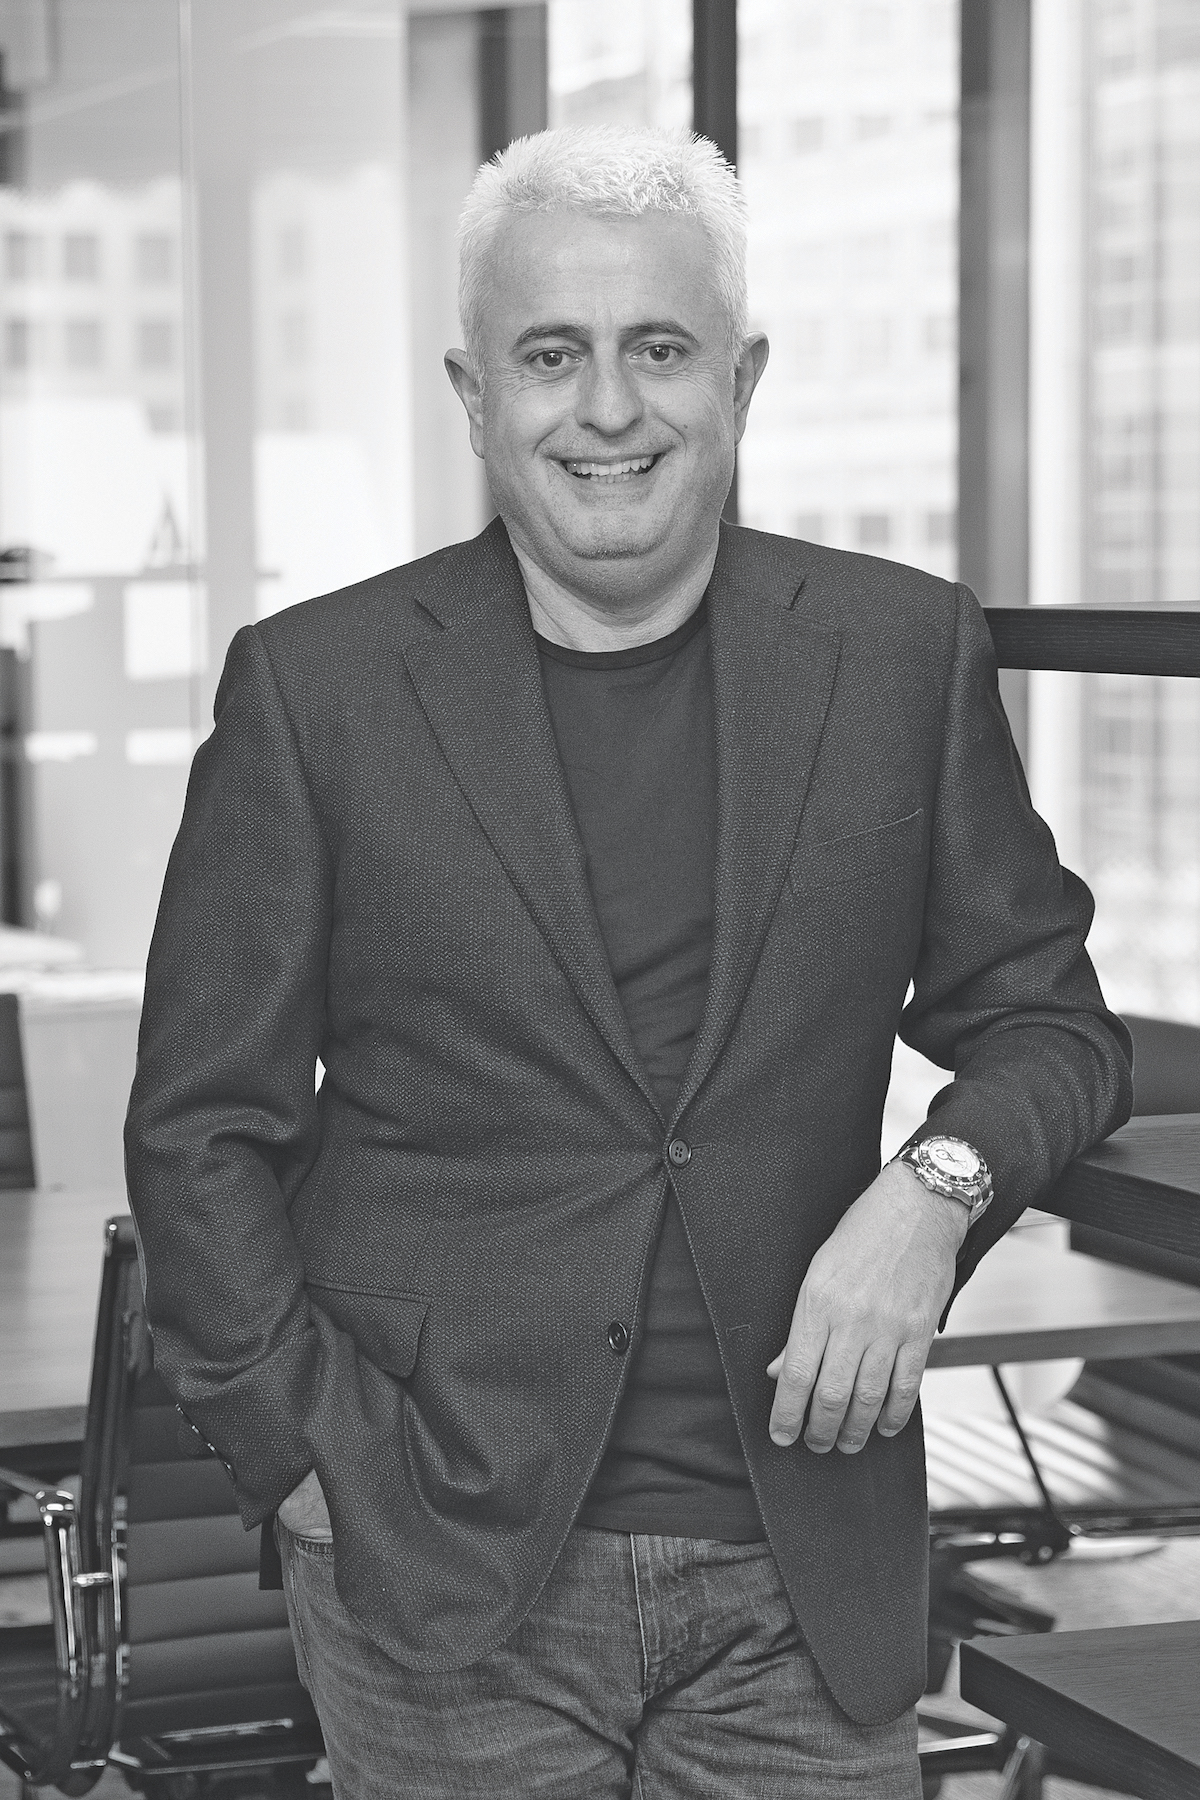 George Syrmalis Group CEO of The iQ Group Global